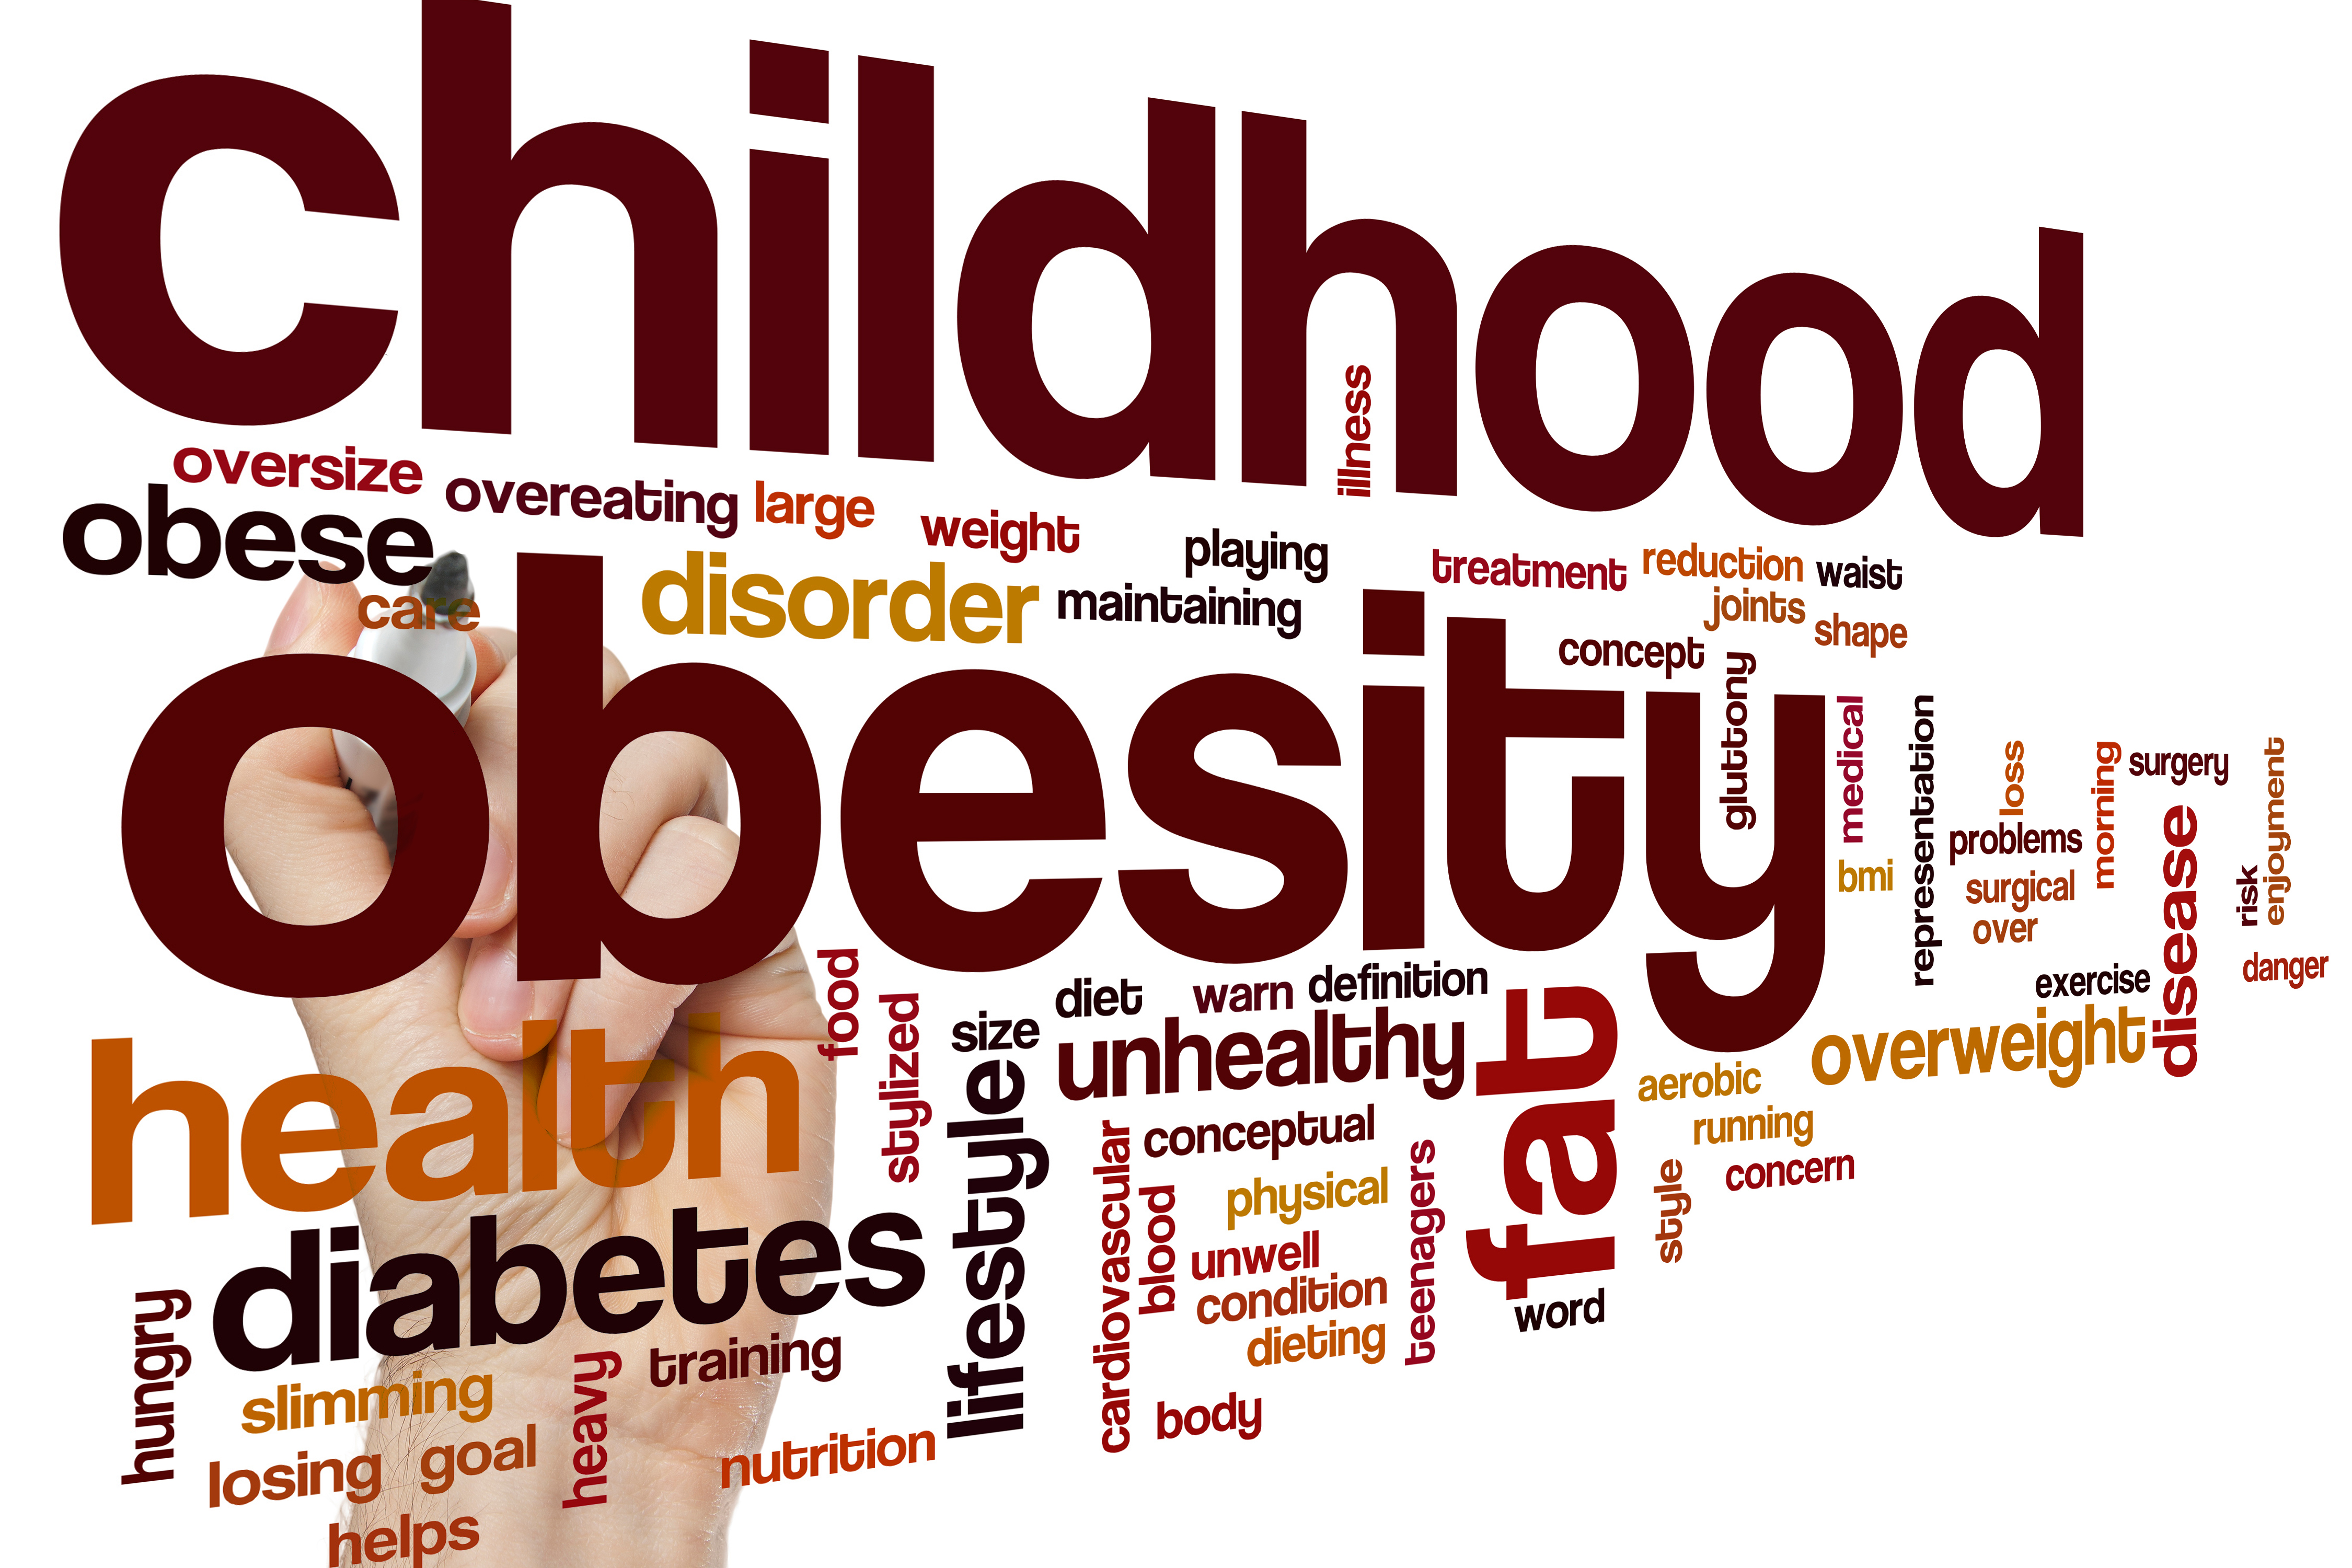 obesity in youth essay